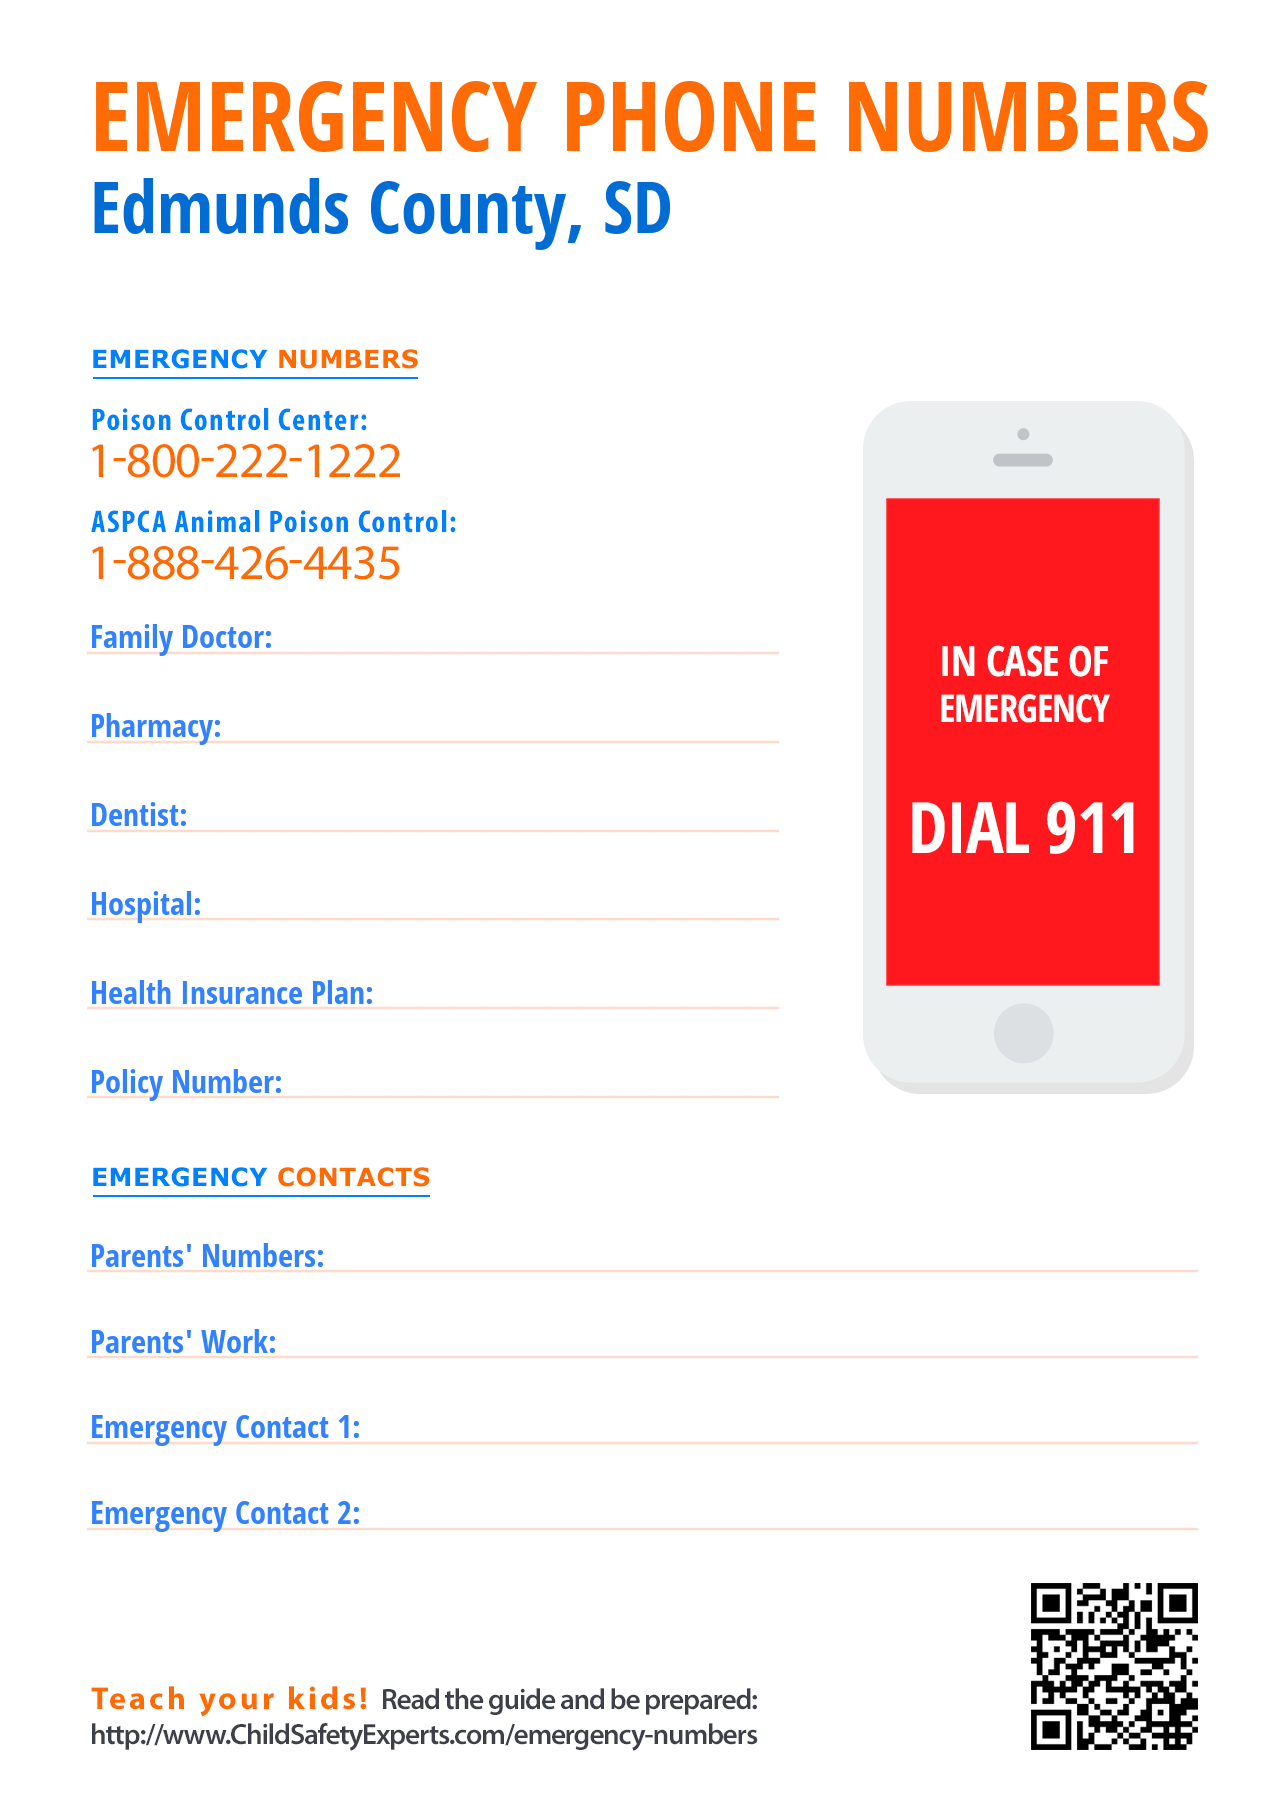 Important emergency phone numbers in Edmunds County, South Dakota